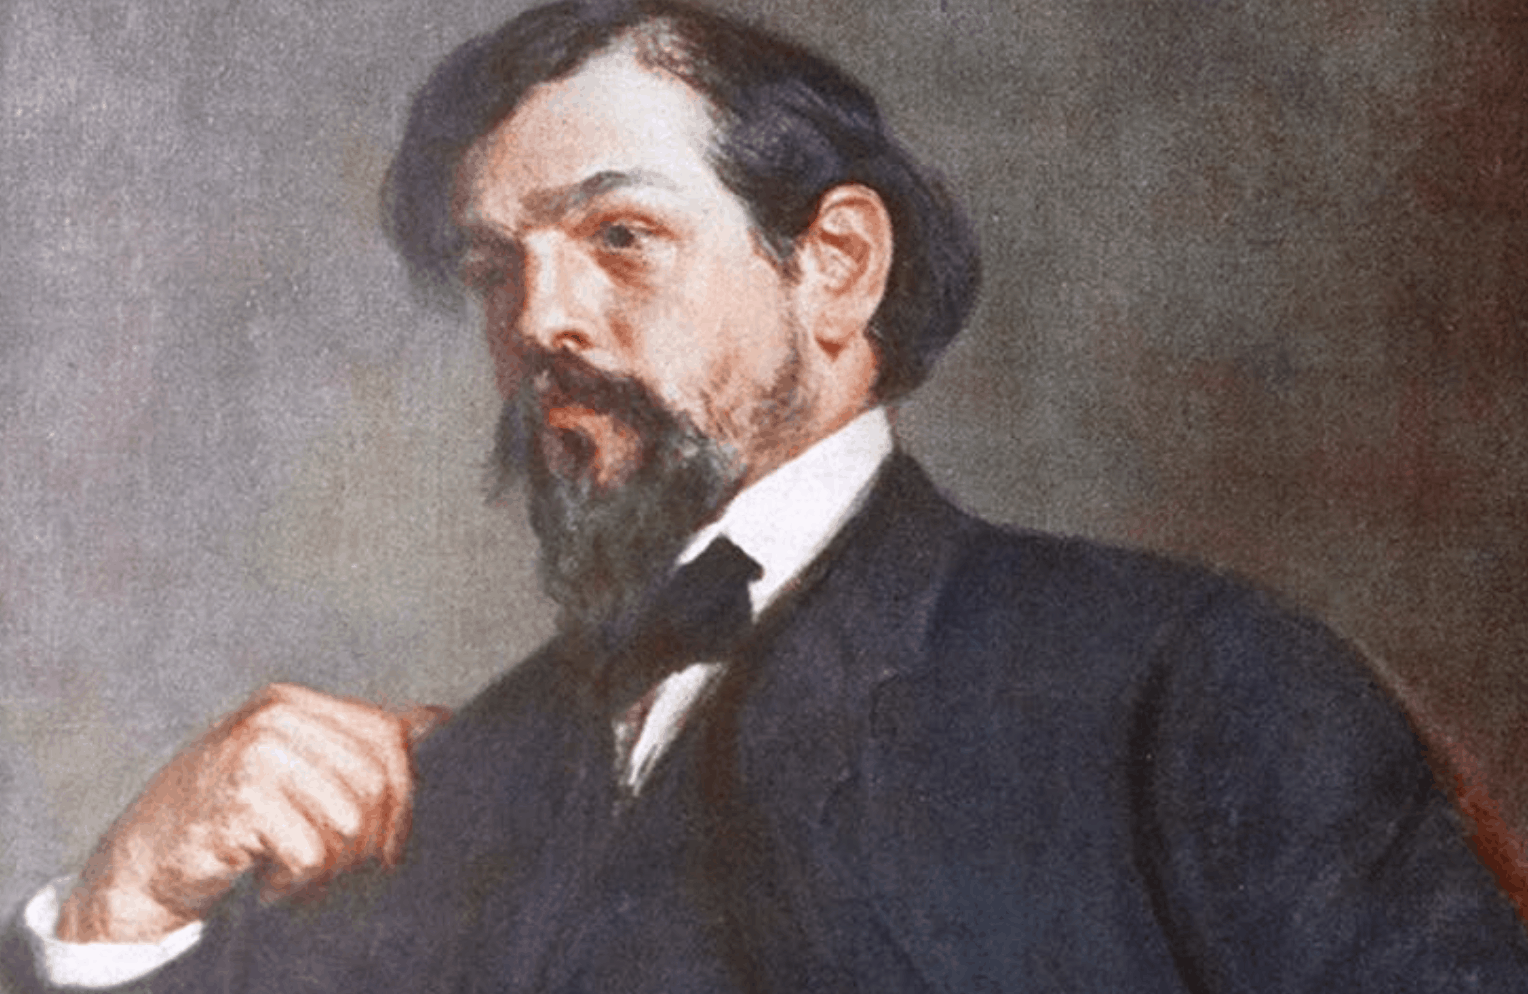 Debussy used pentatonic scales in his music